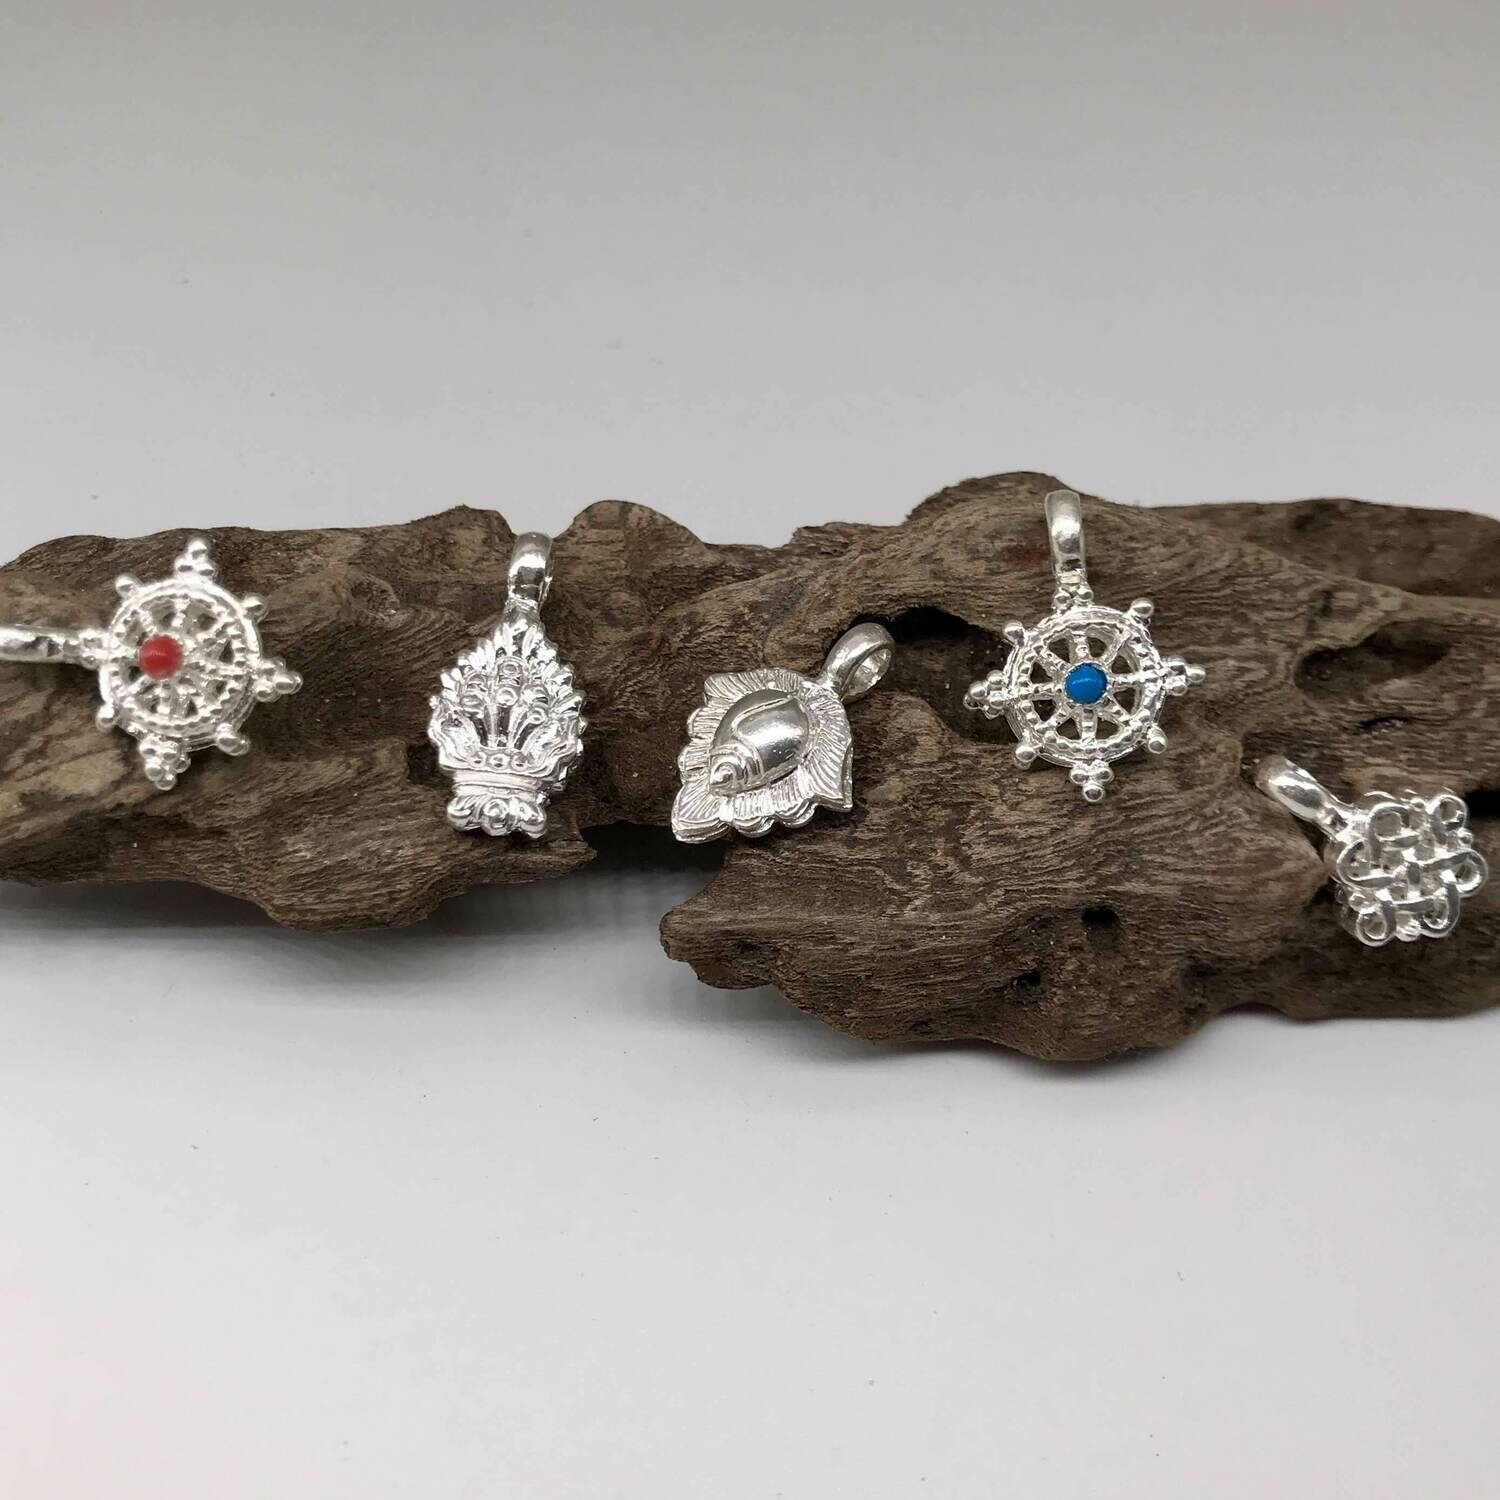 Silver Bhum counters for Buddhist Rosary